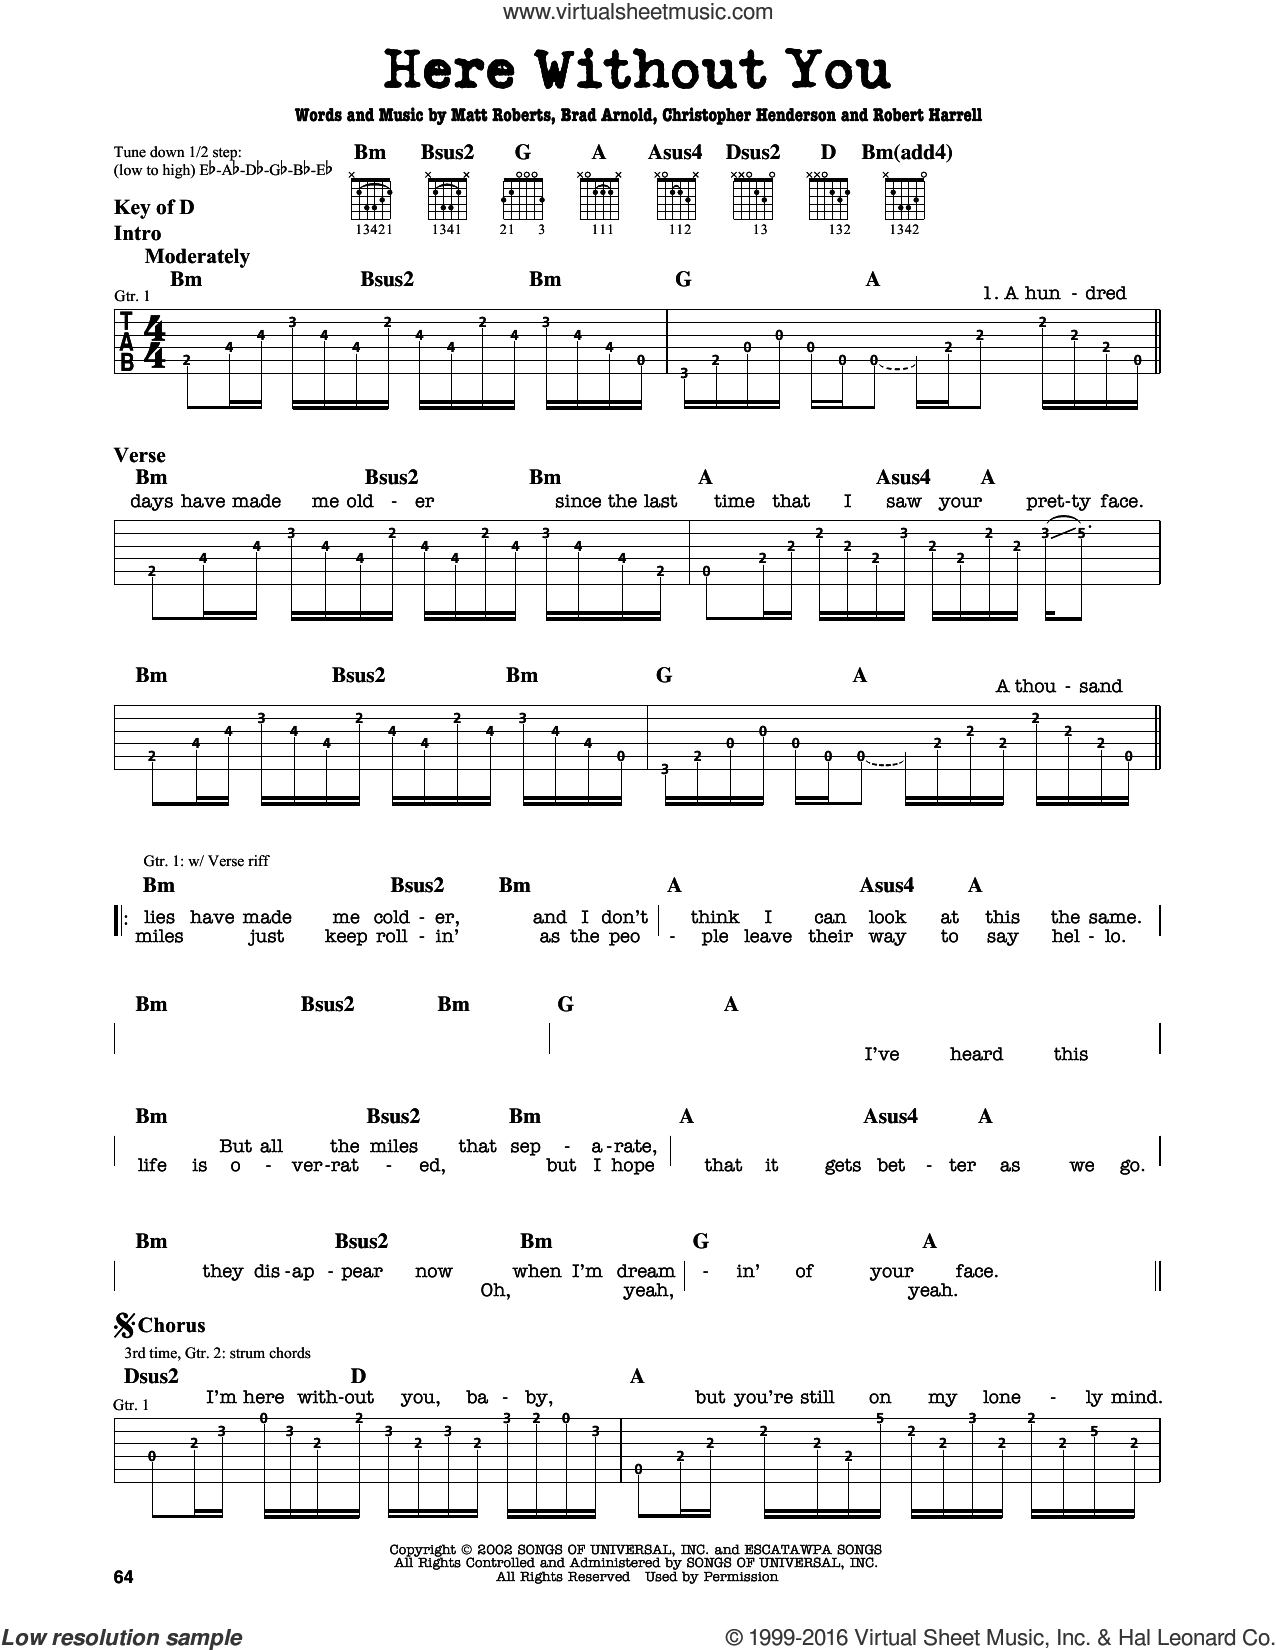 Here Without You sheet music for guitar solo (lead sheet) by Robert Harrell